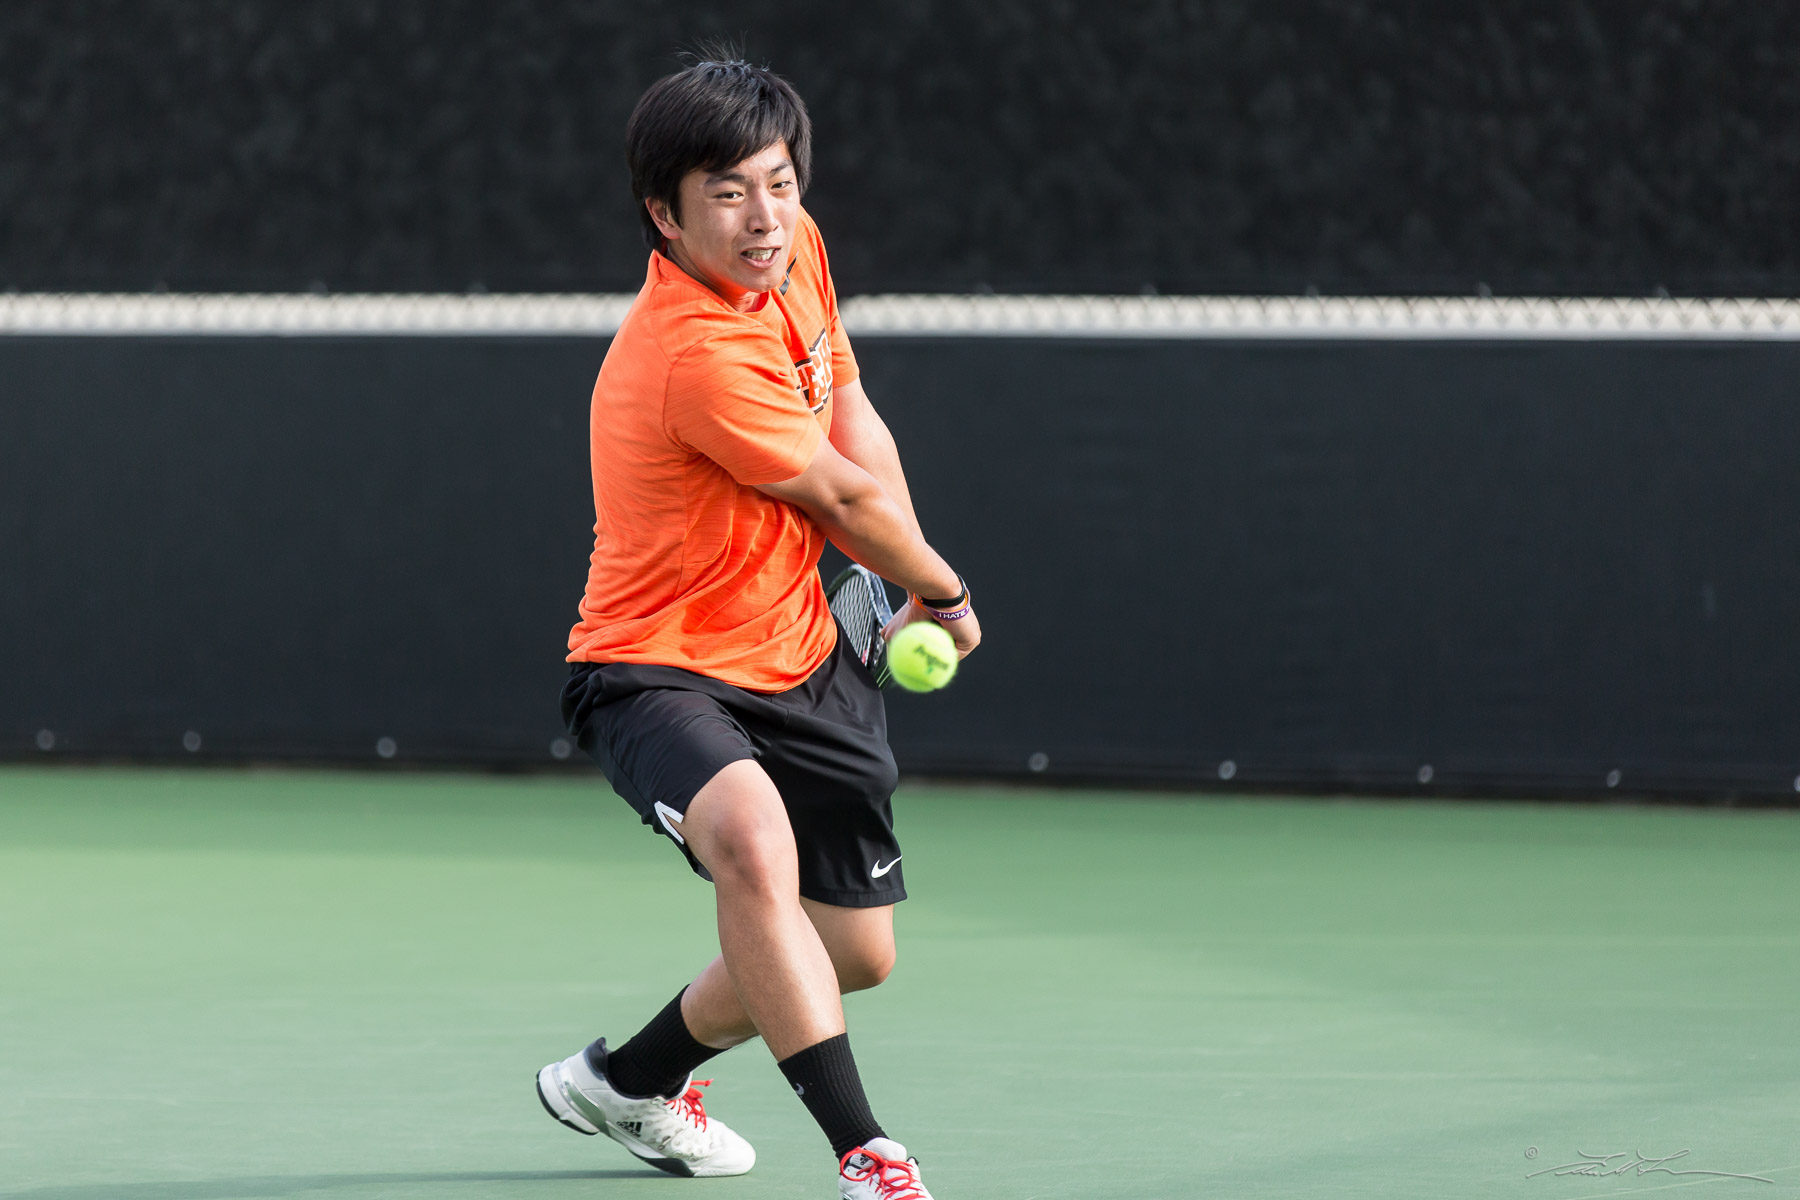 Men's Tennis Finishes Sixth at SCIACs, Best Since 2005